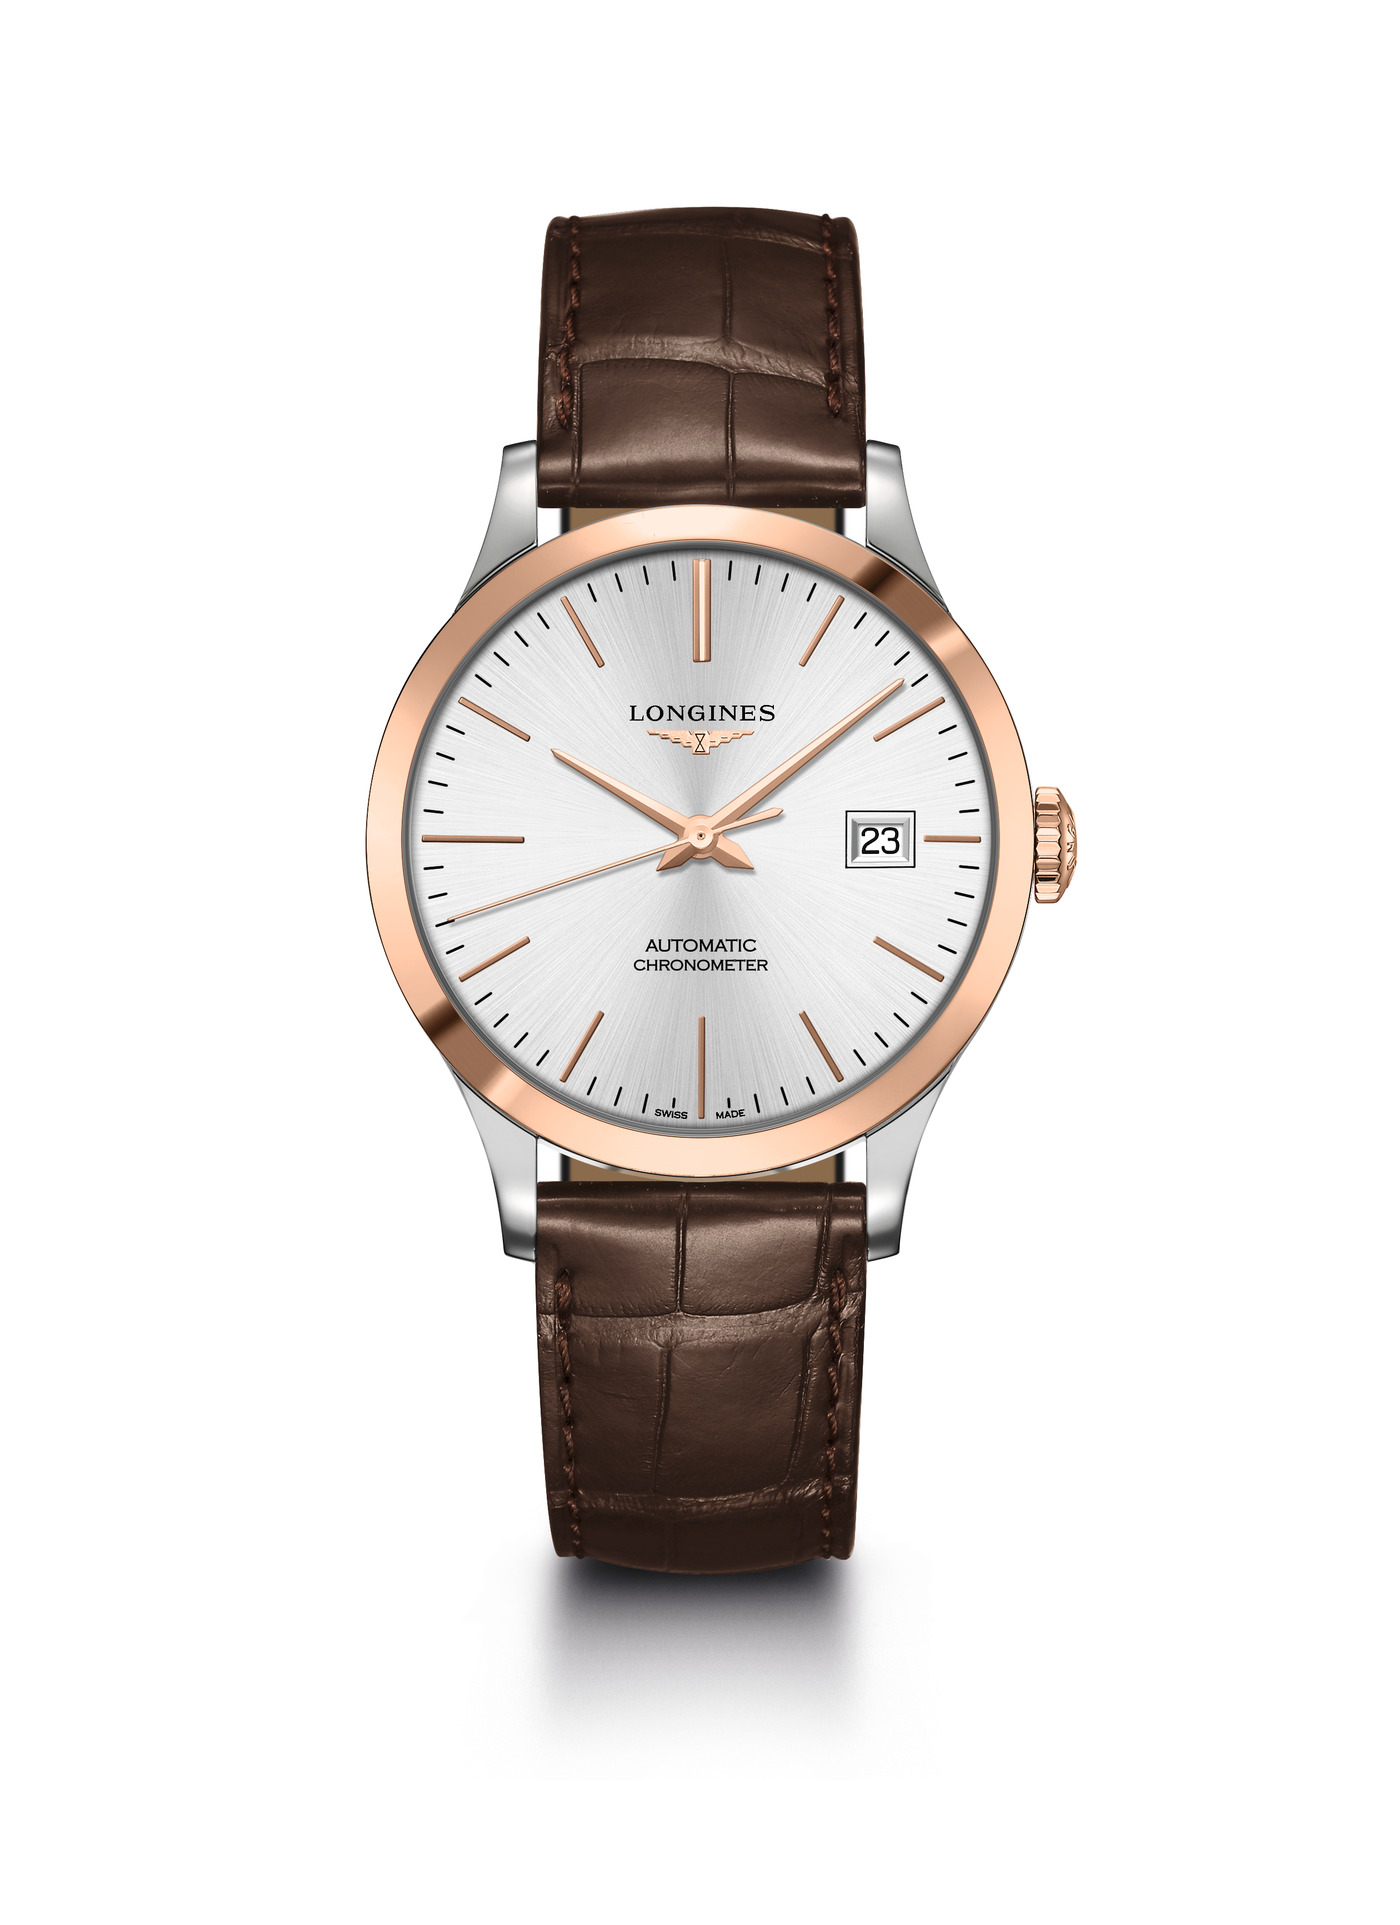 Longines Record Watch 8